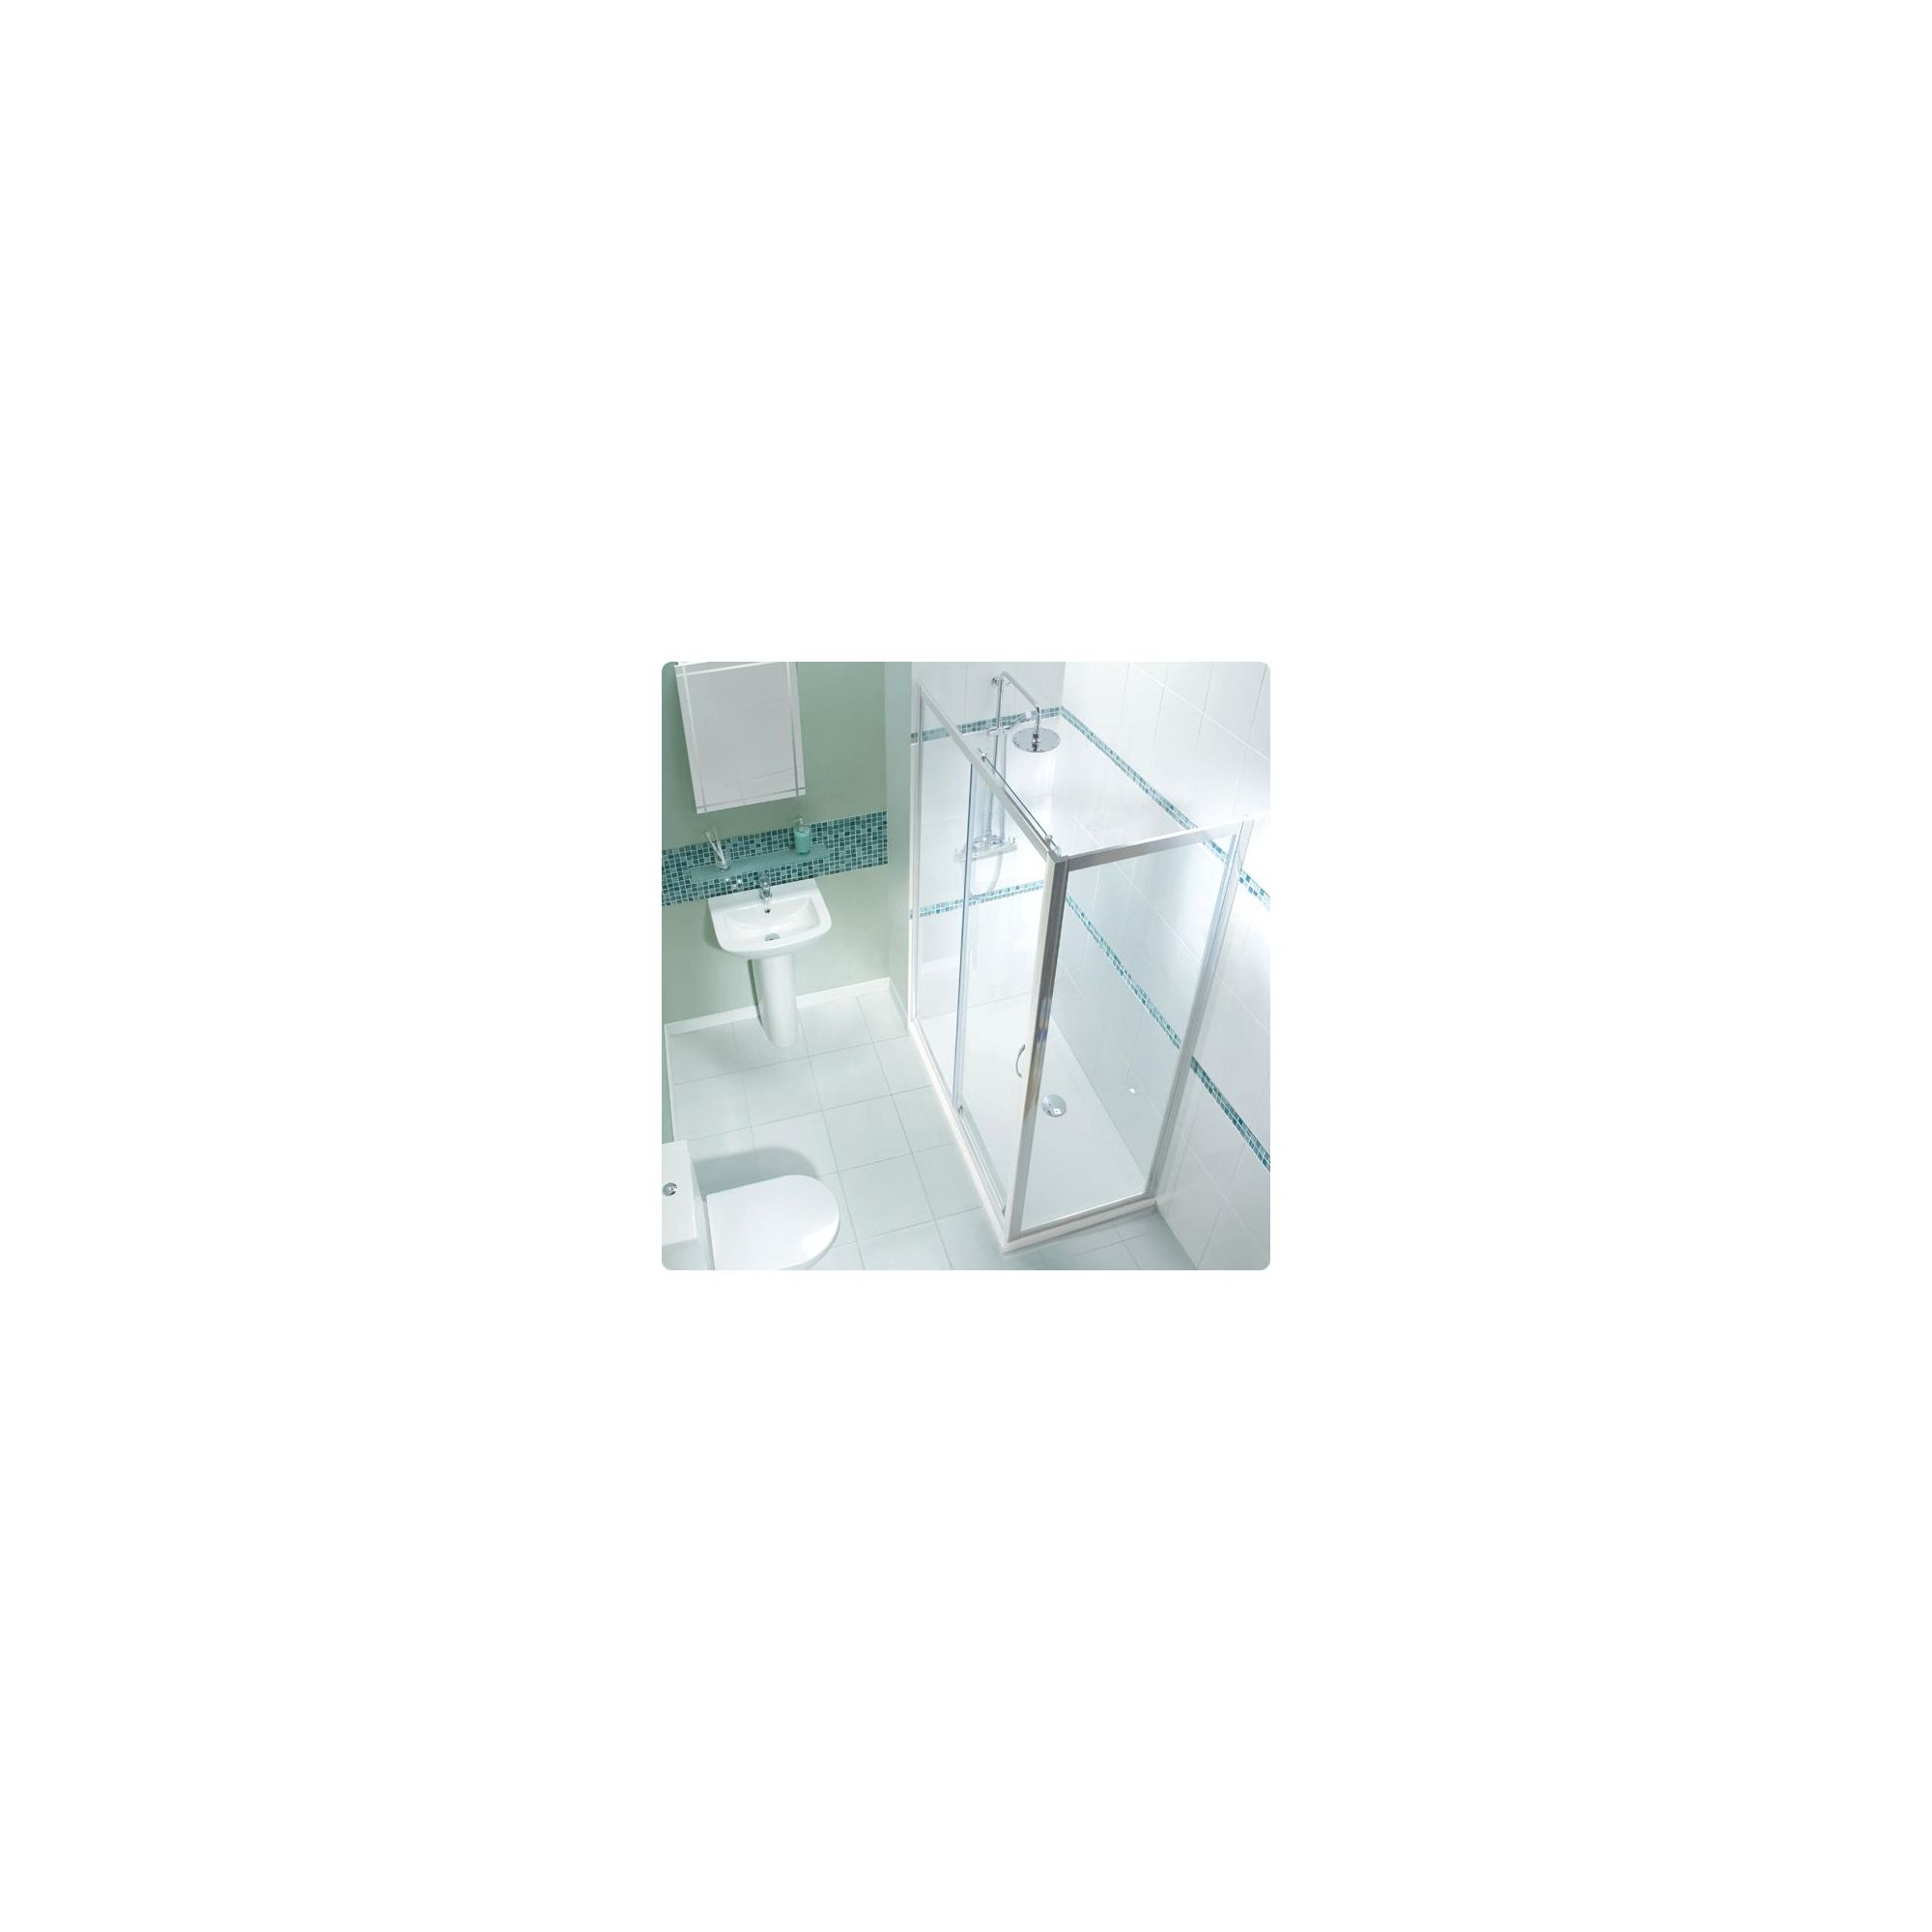 Balterley Framed Sliding Shower Enclosure, 1100mm x 700mm, Low Profile Tray, 6mm Glass at Tesco Direct